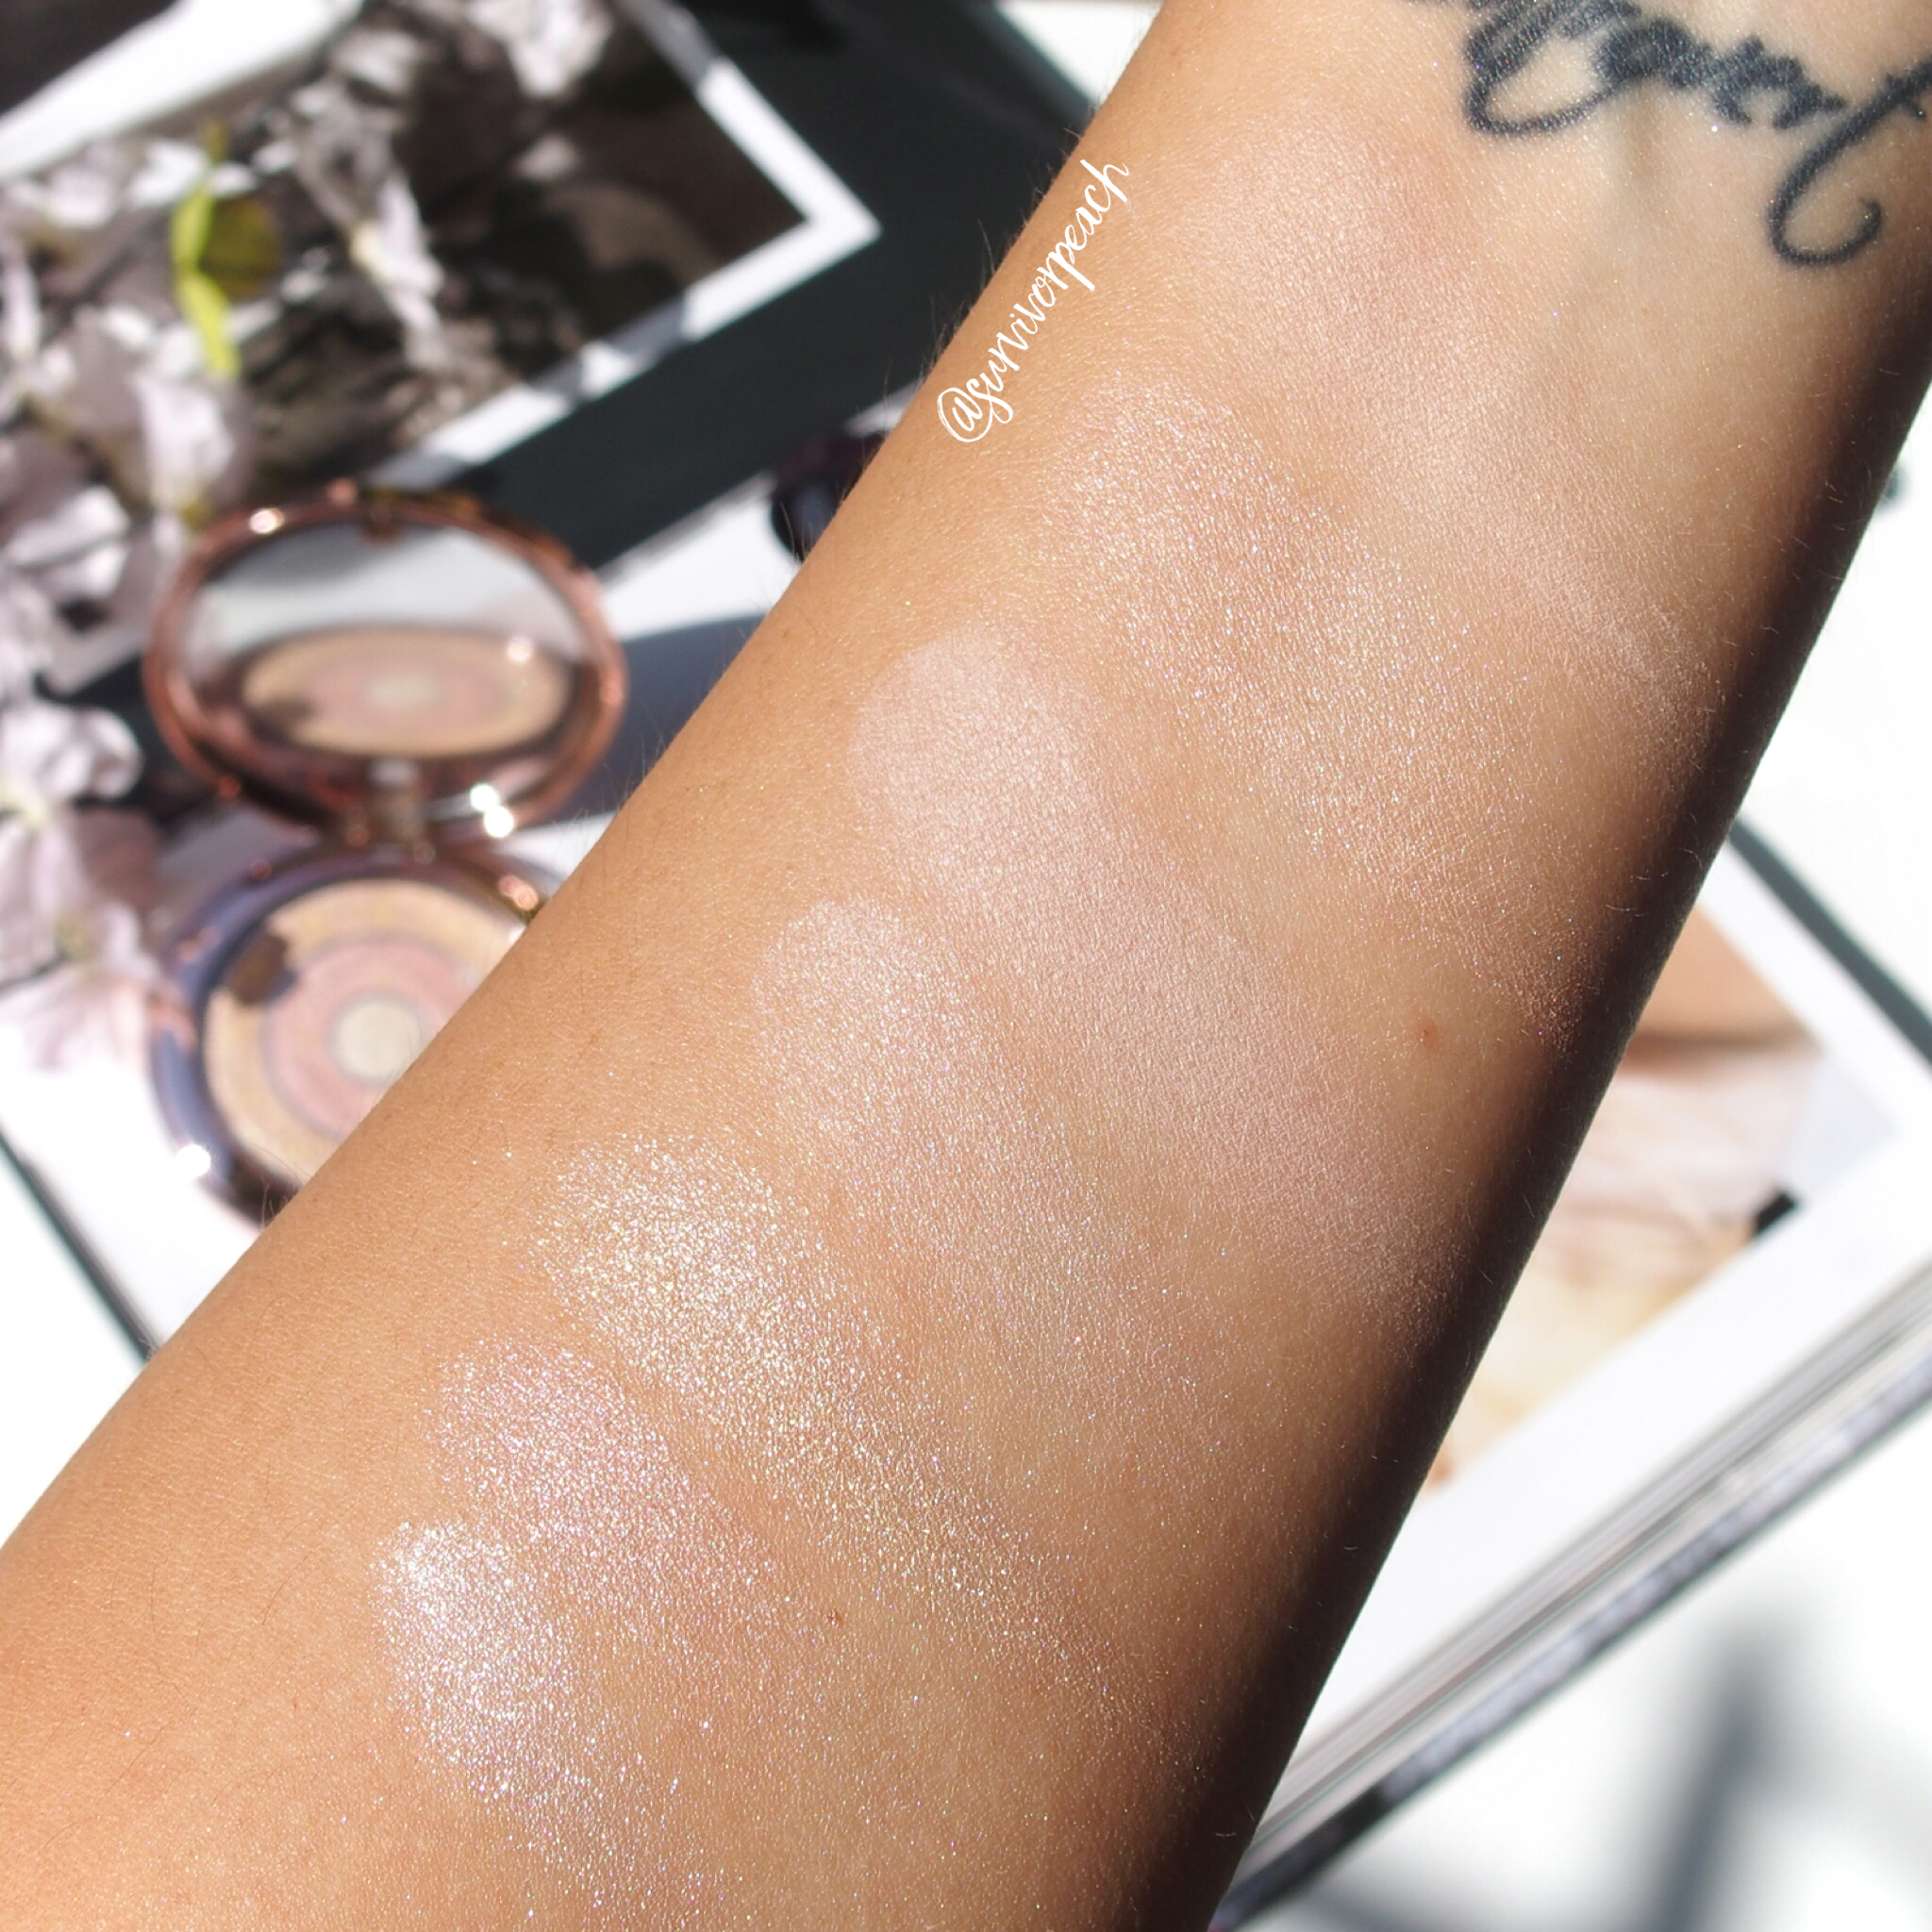 Swatches if the Compact-Expert Dual Powder in Apricot Glow, Rosy Flush, and the ByTerry Preciosity Flash Light Dual Compact.